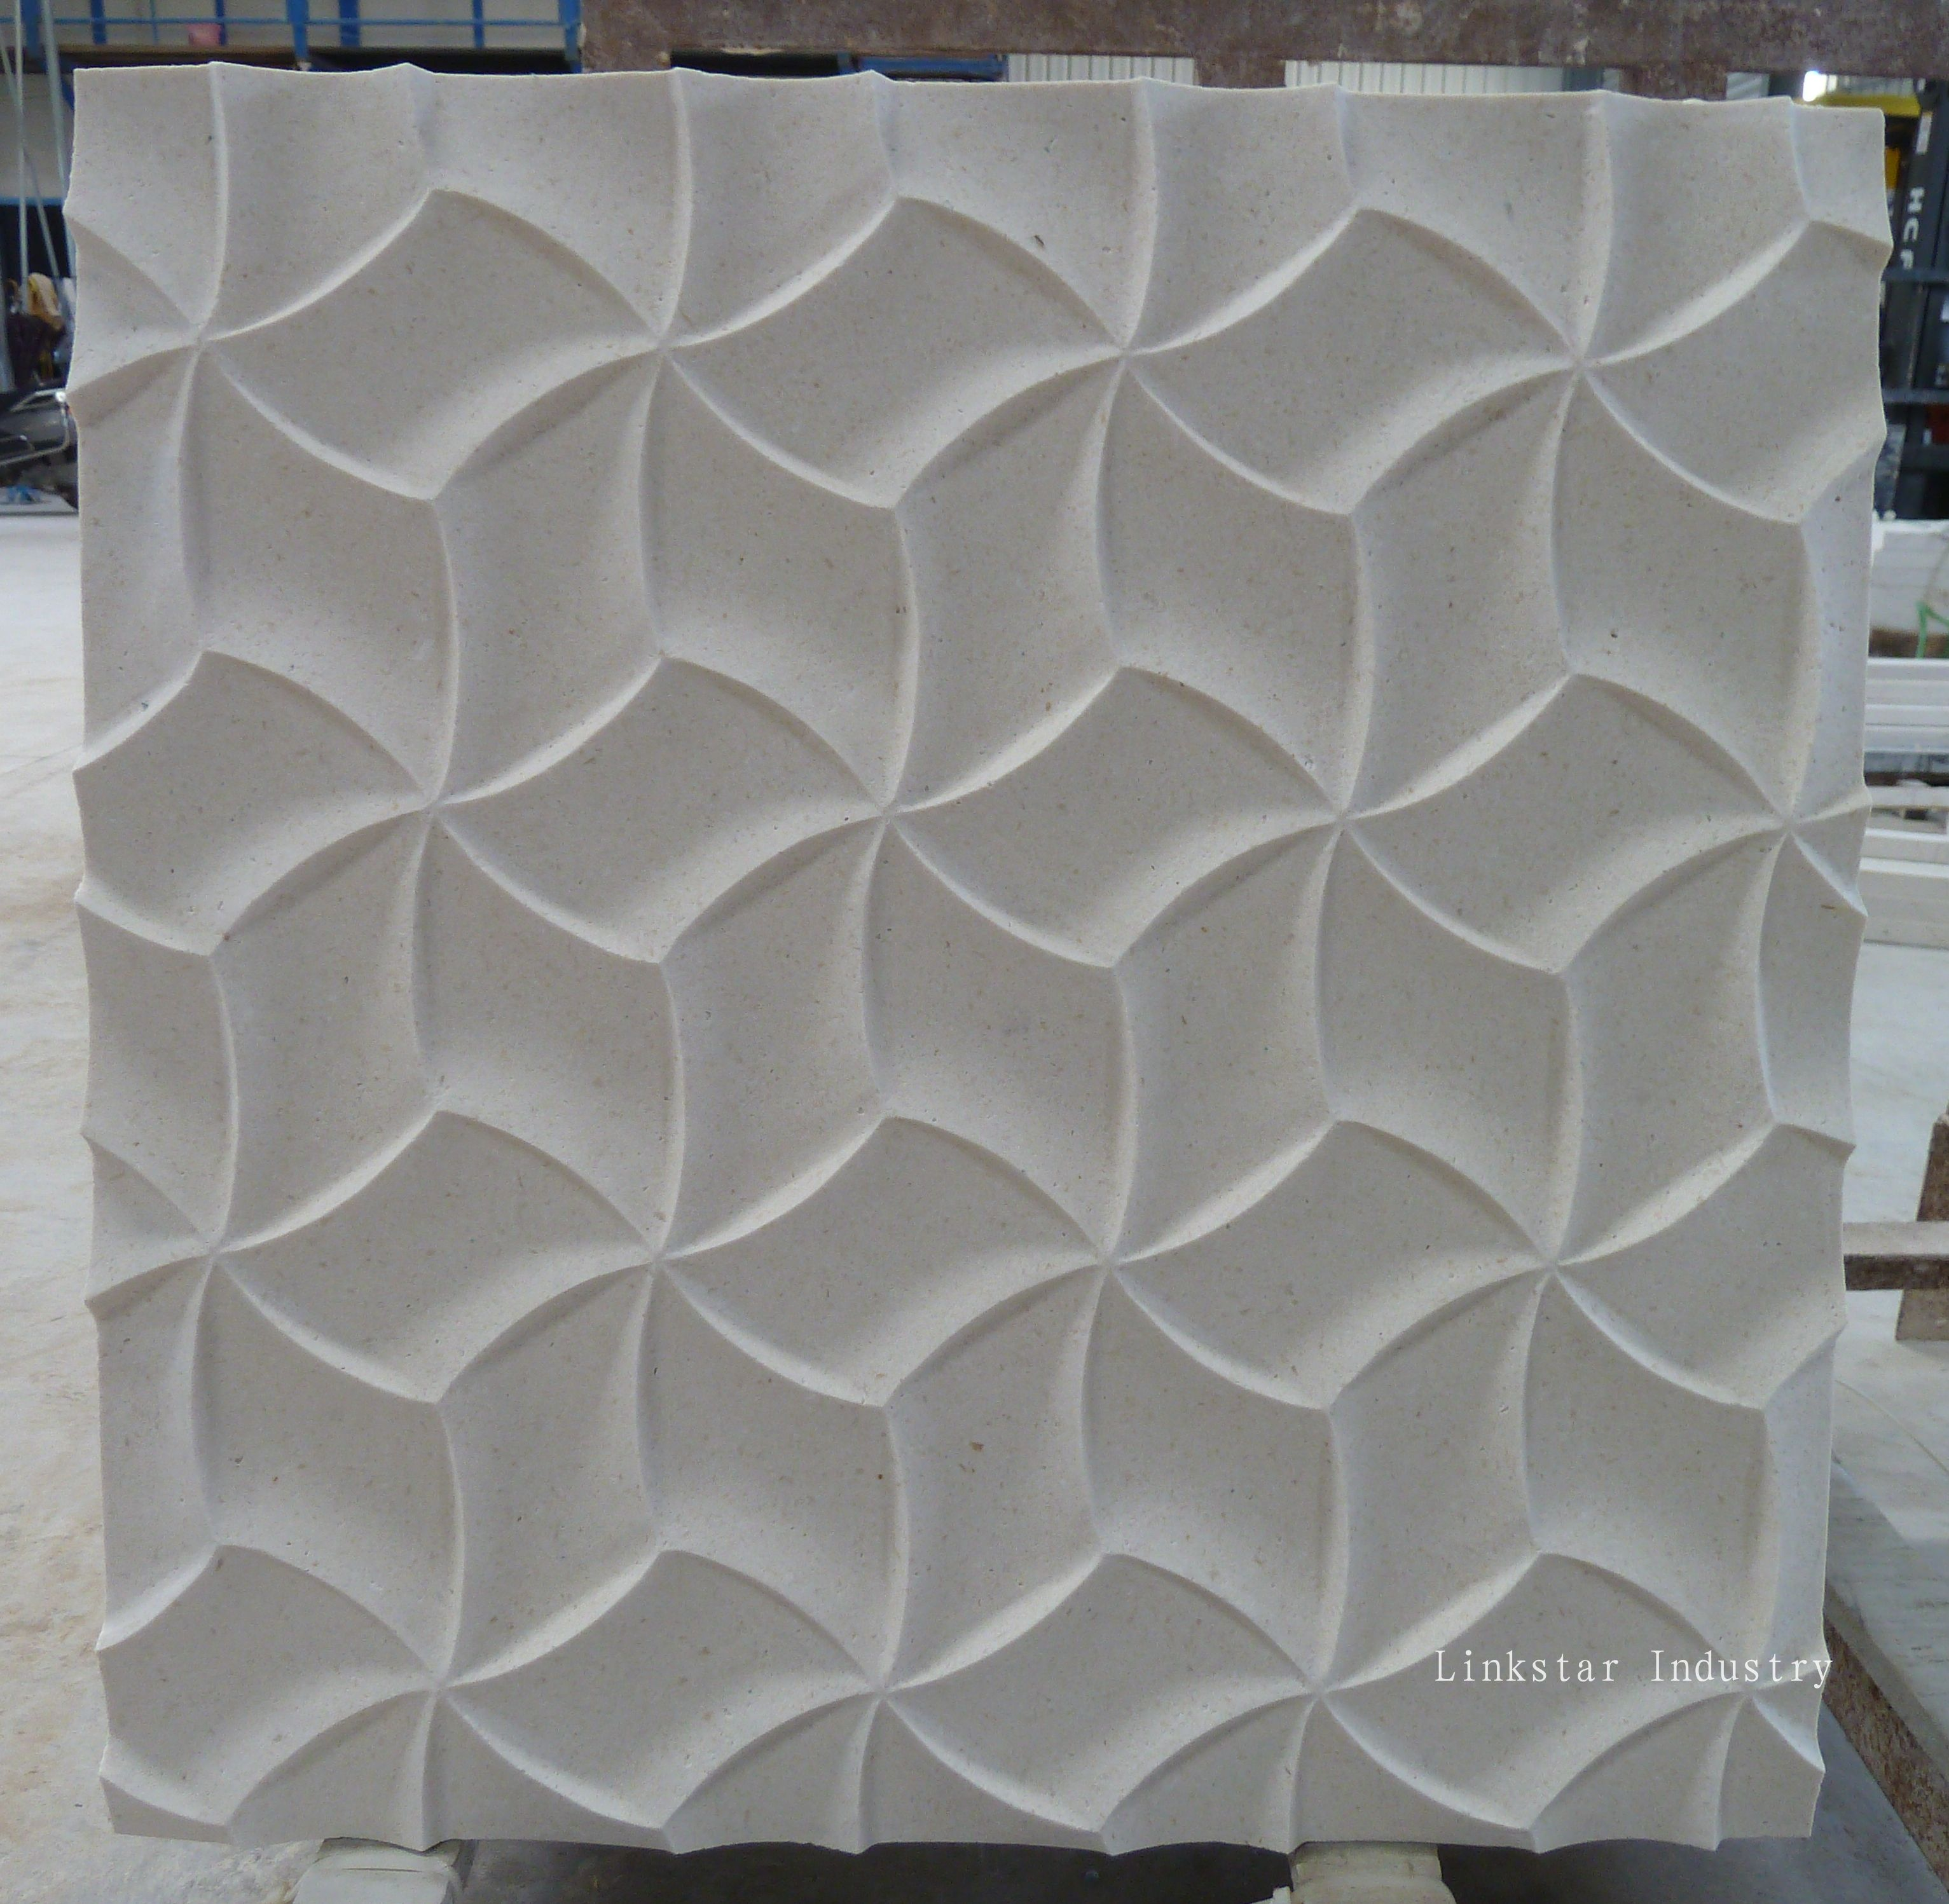 3d Cnc Interior Design With Stone Wall Will Add Texture